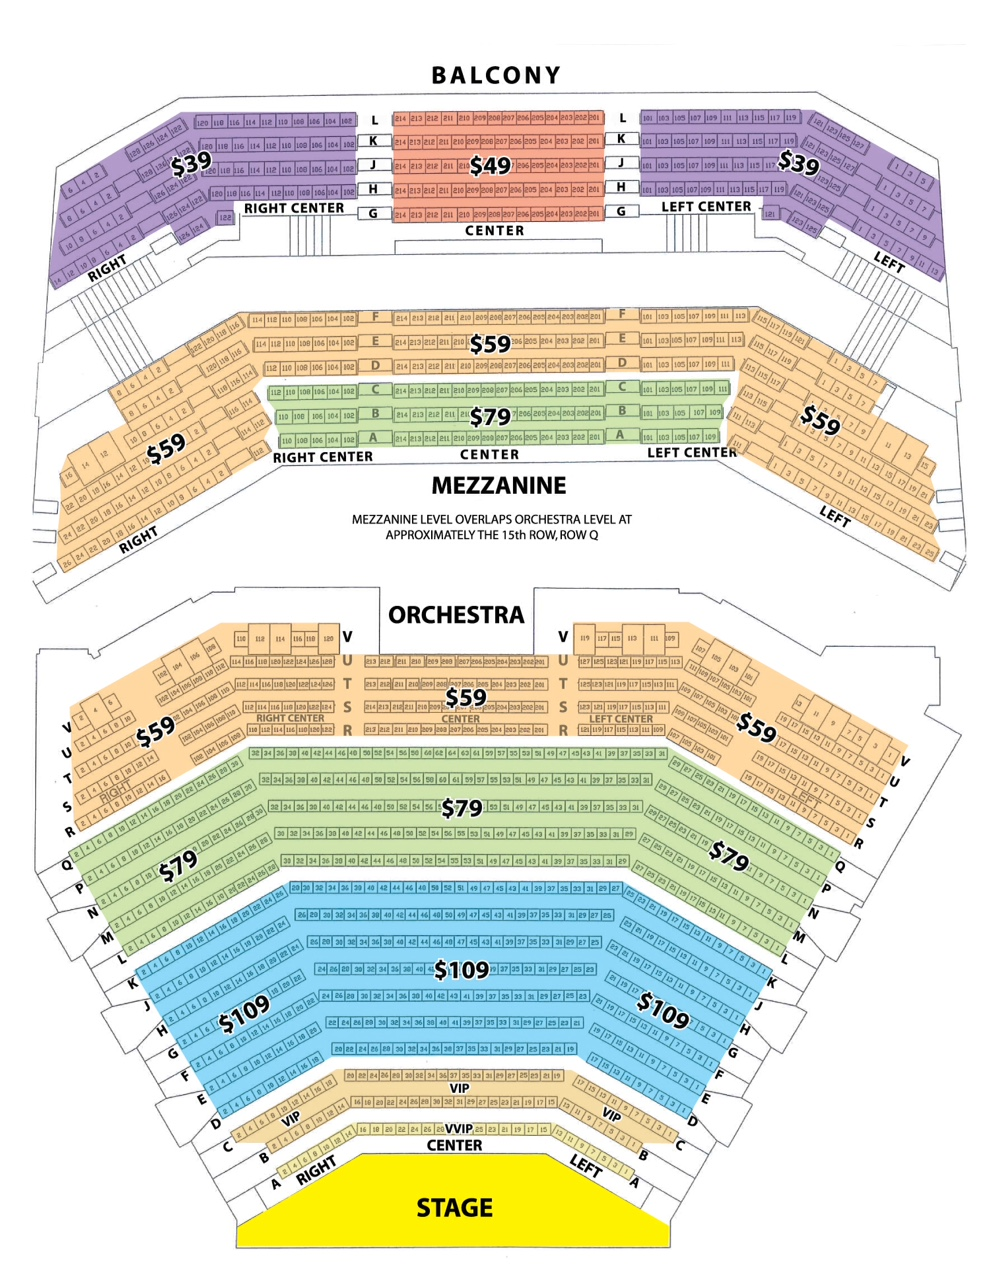 7 Luxury Coral Springs Center For The Arts Seating Chart